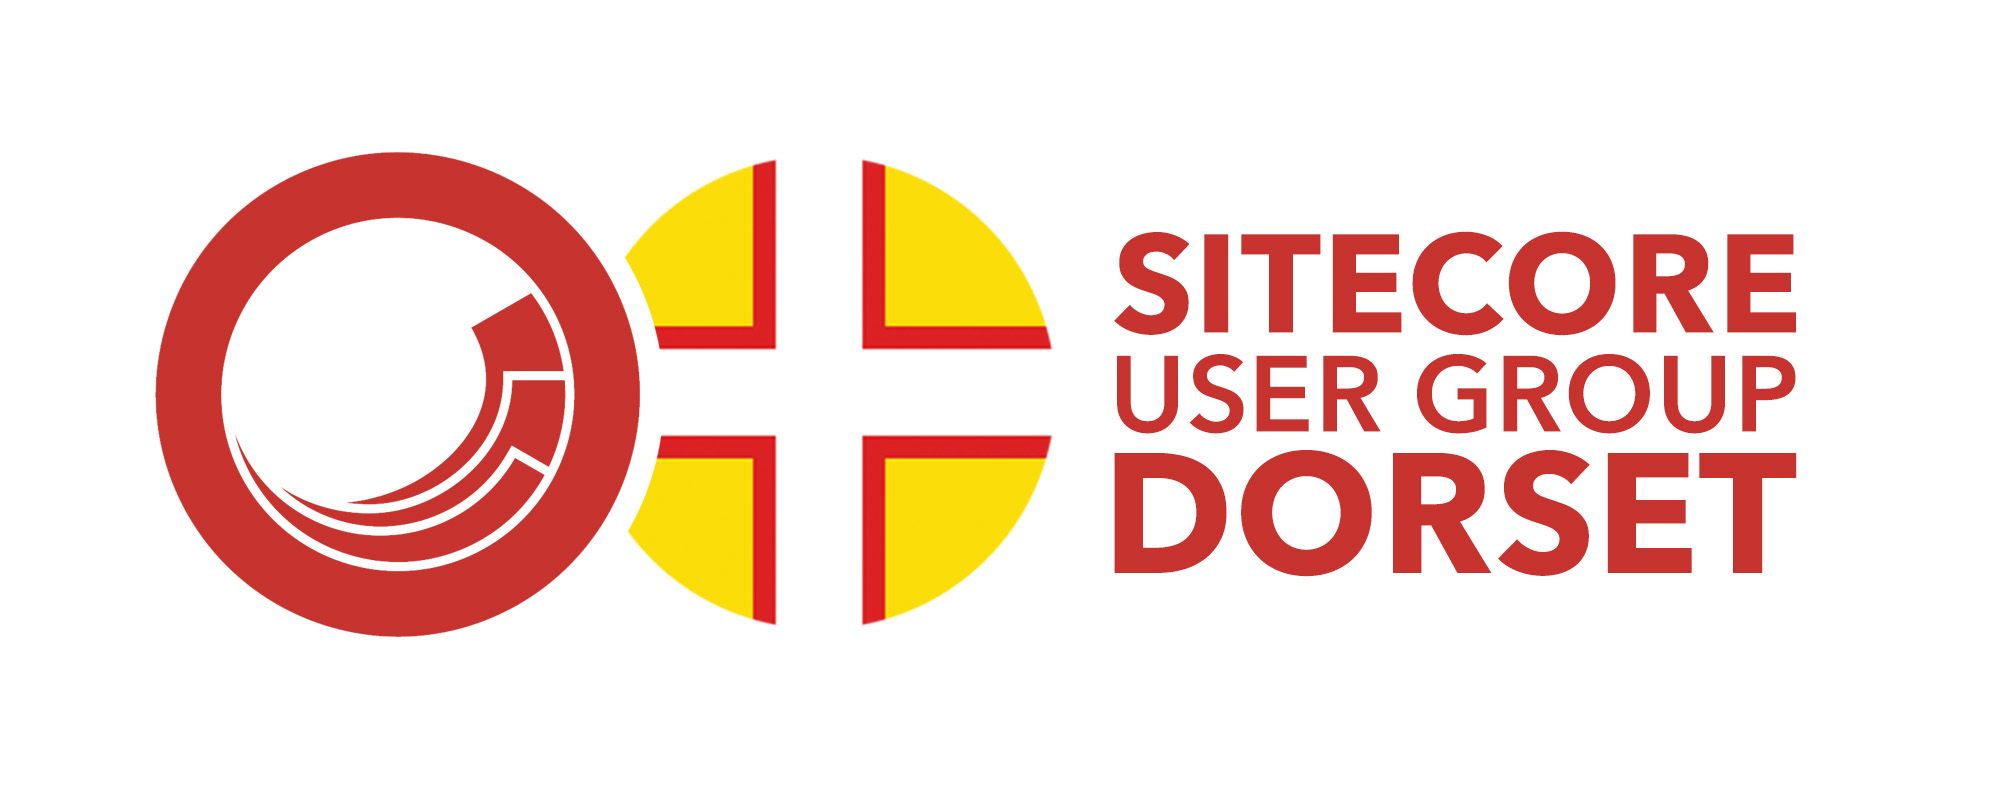 Sitecore User Group Dorset